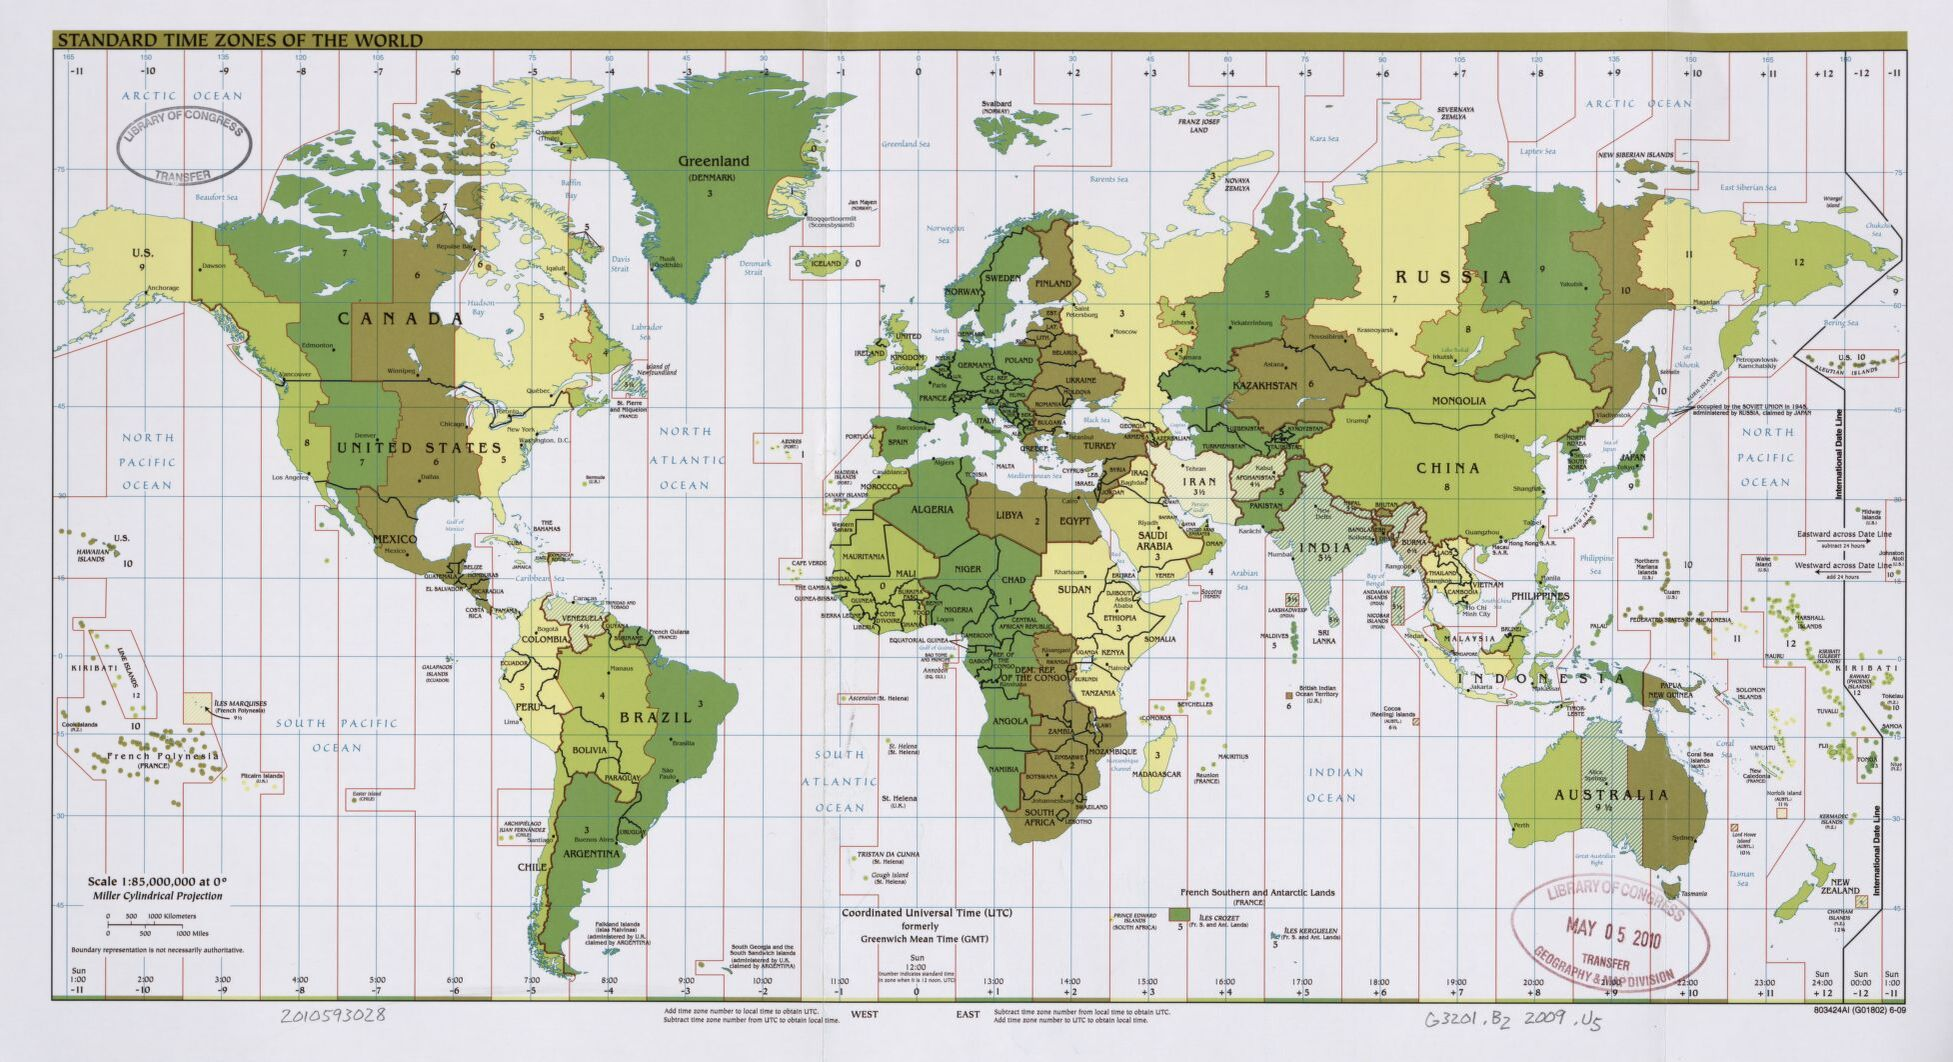 The World Standard time zones Map   | 2009 | Large, Printable Downloadable Map